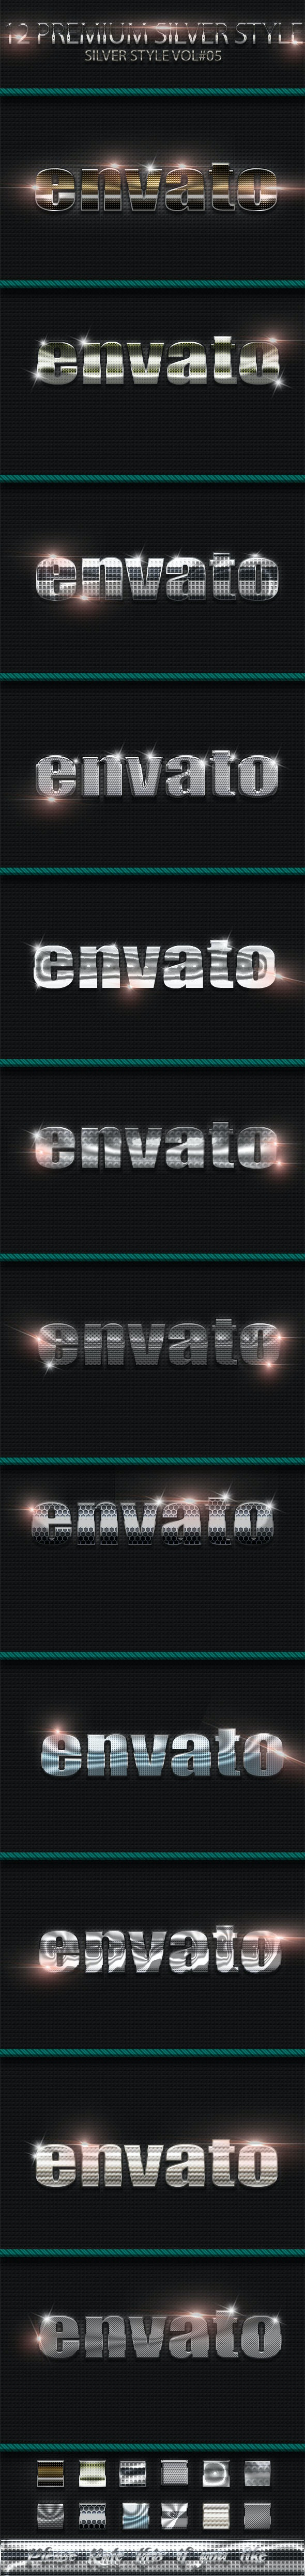 12 Photoshop Text Effect Styles Vol 5 - Text Effects Styles